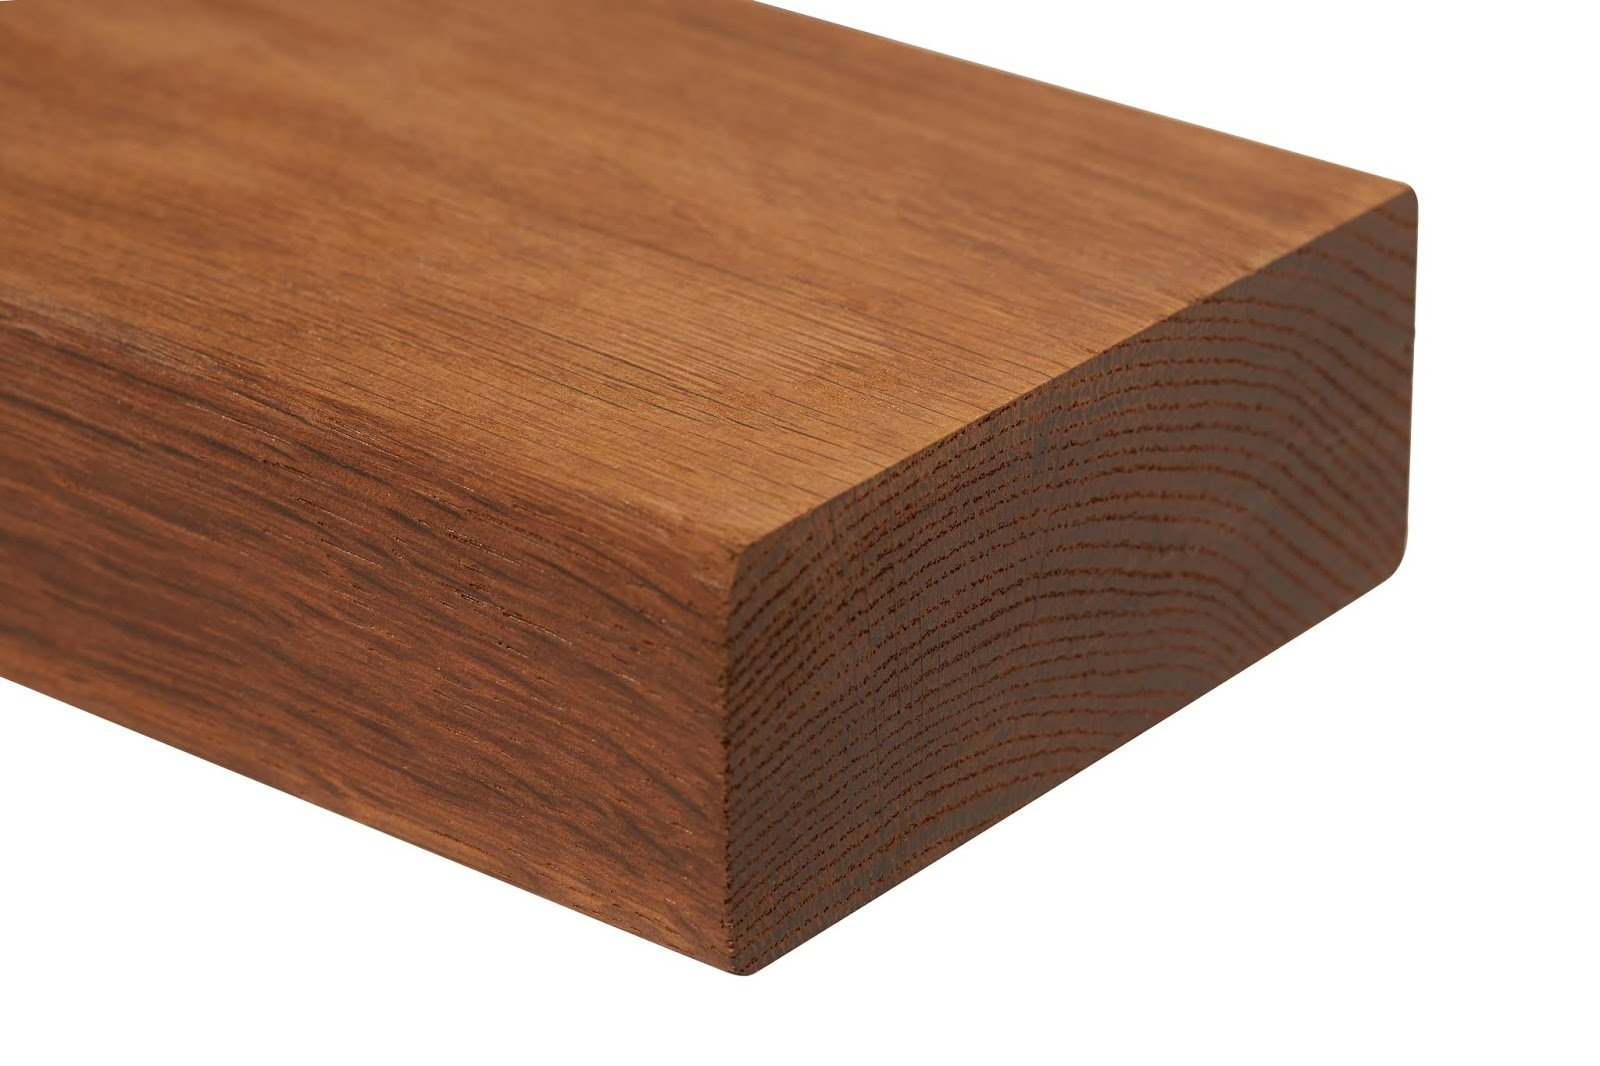 Single piece of thermally modified lumber